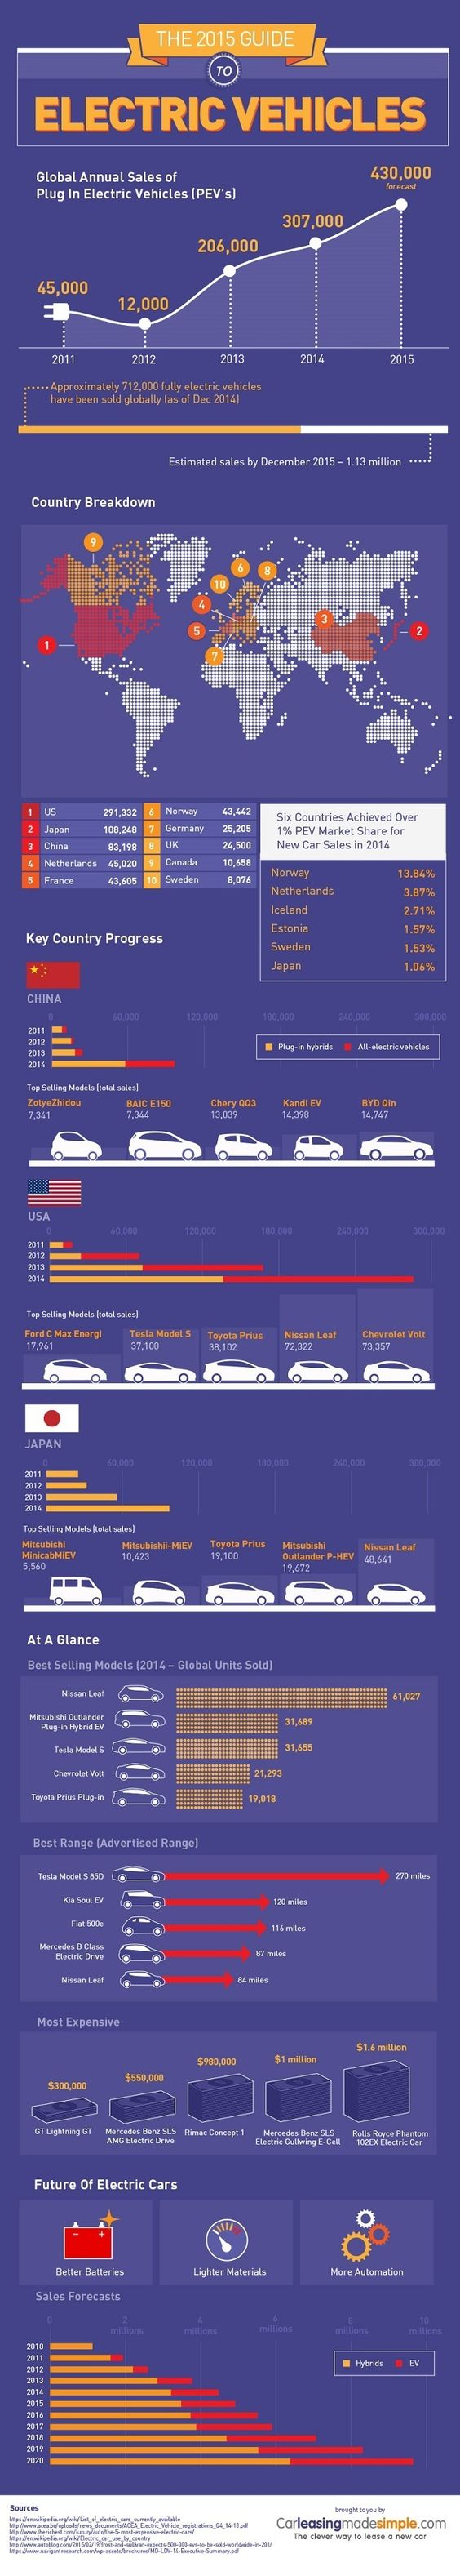 Electric cars are enjoying their time in the spotlight at the moment. Elon Musk, in bringing Tesla to the forefront of the EV business, gave new respectability to an industry that seemed a little pie in the sky before him. Suddenly, EVs were a viable alternative to regular old combustion engines. But what state is the EV business in in 2015? This infographic can tell you.